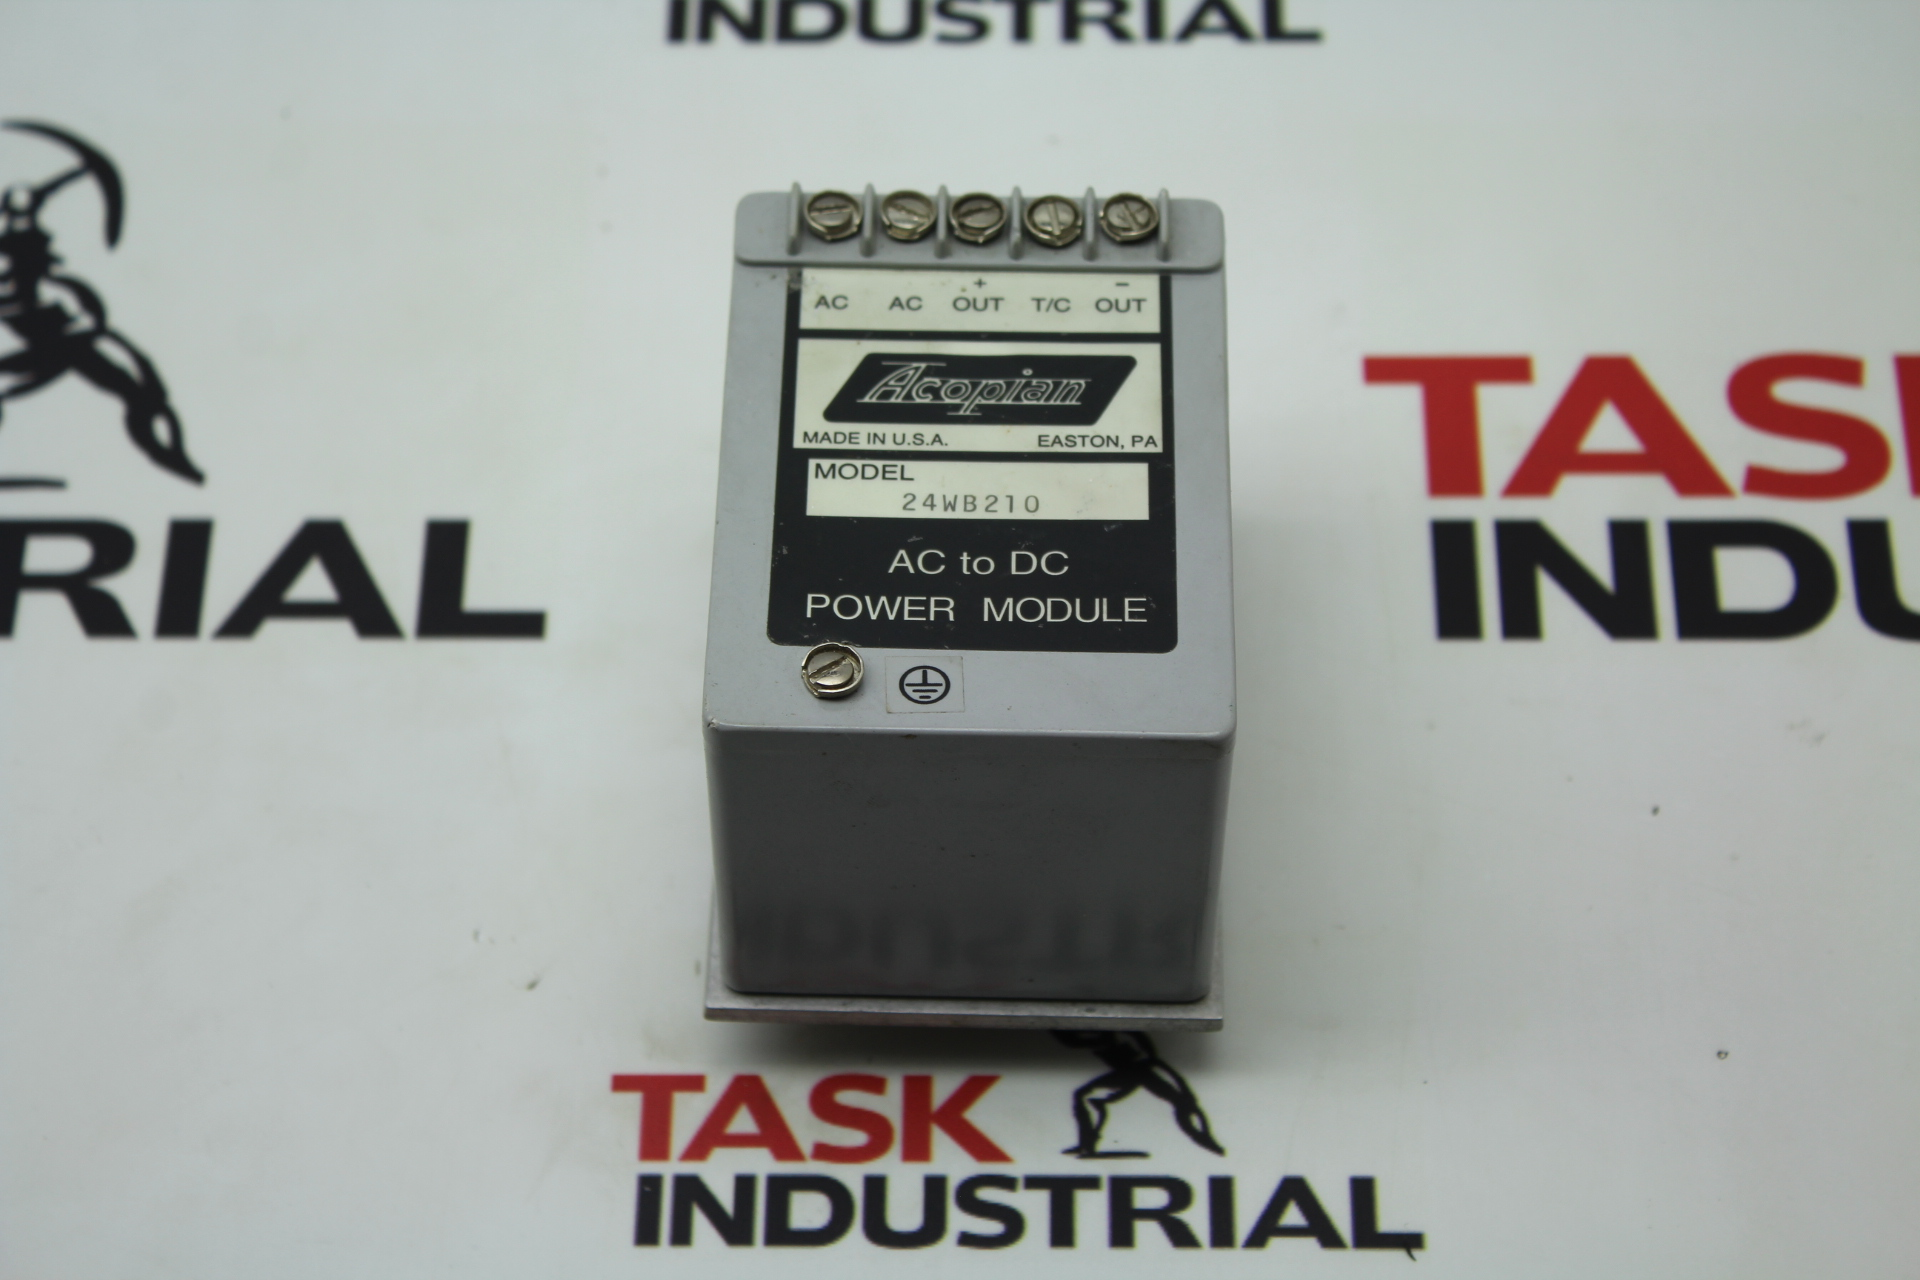 Acopian Power Module Model 24WB210 AC to DC